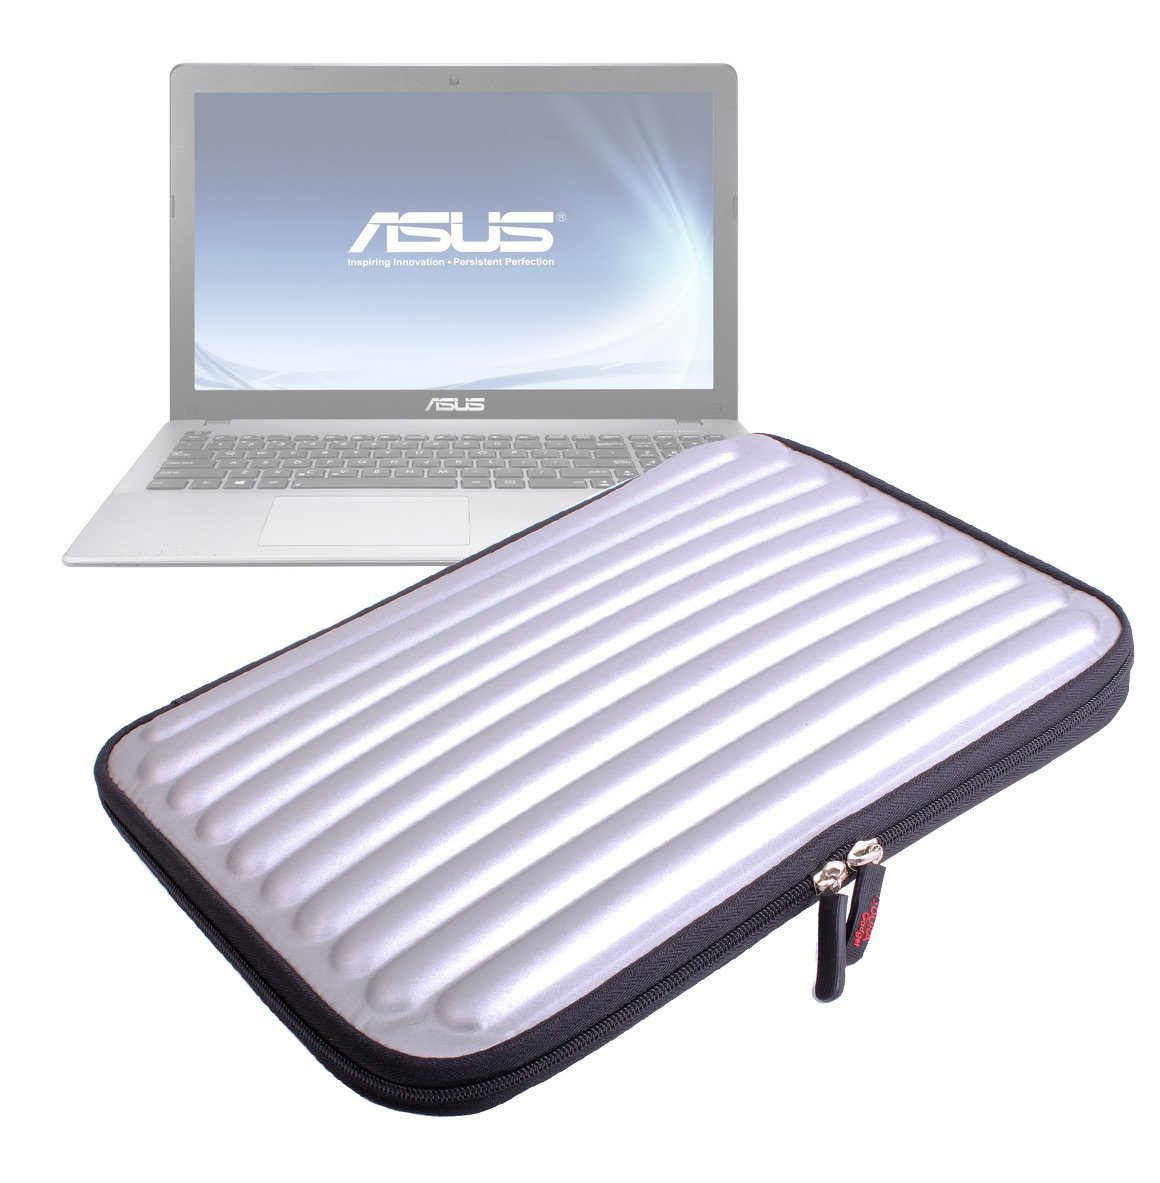 ASUS K73SM NOTEBOOK INSTANT CONNECT WINDOWS 8 DRIVER DOWNLOAD